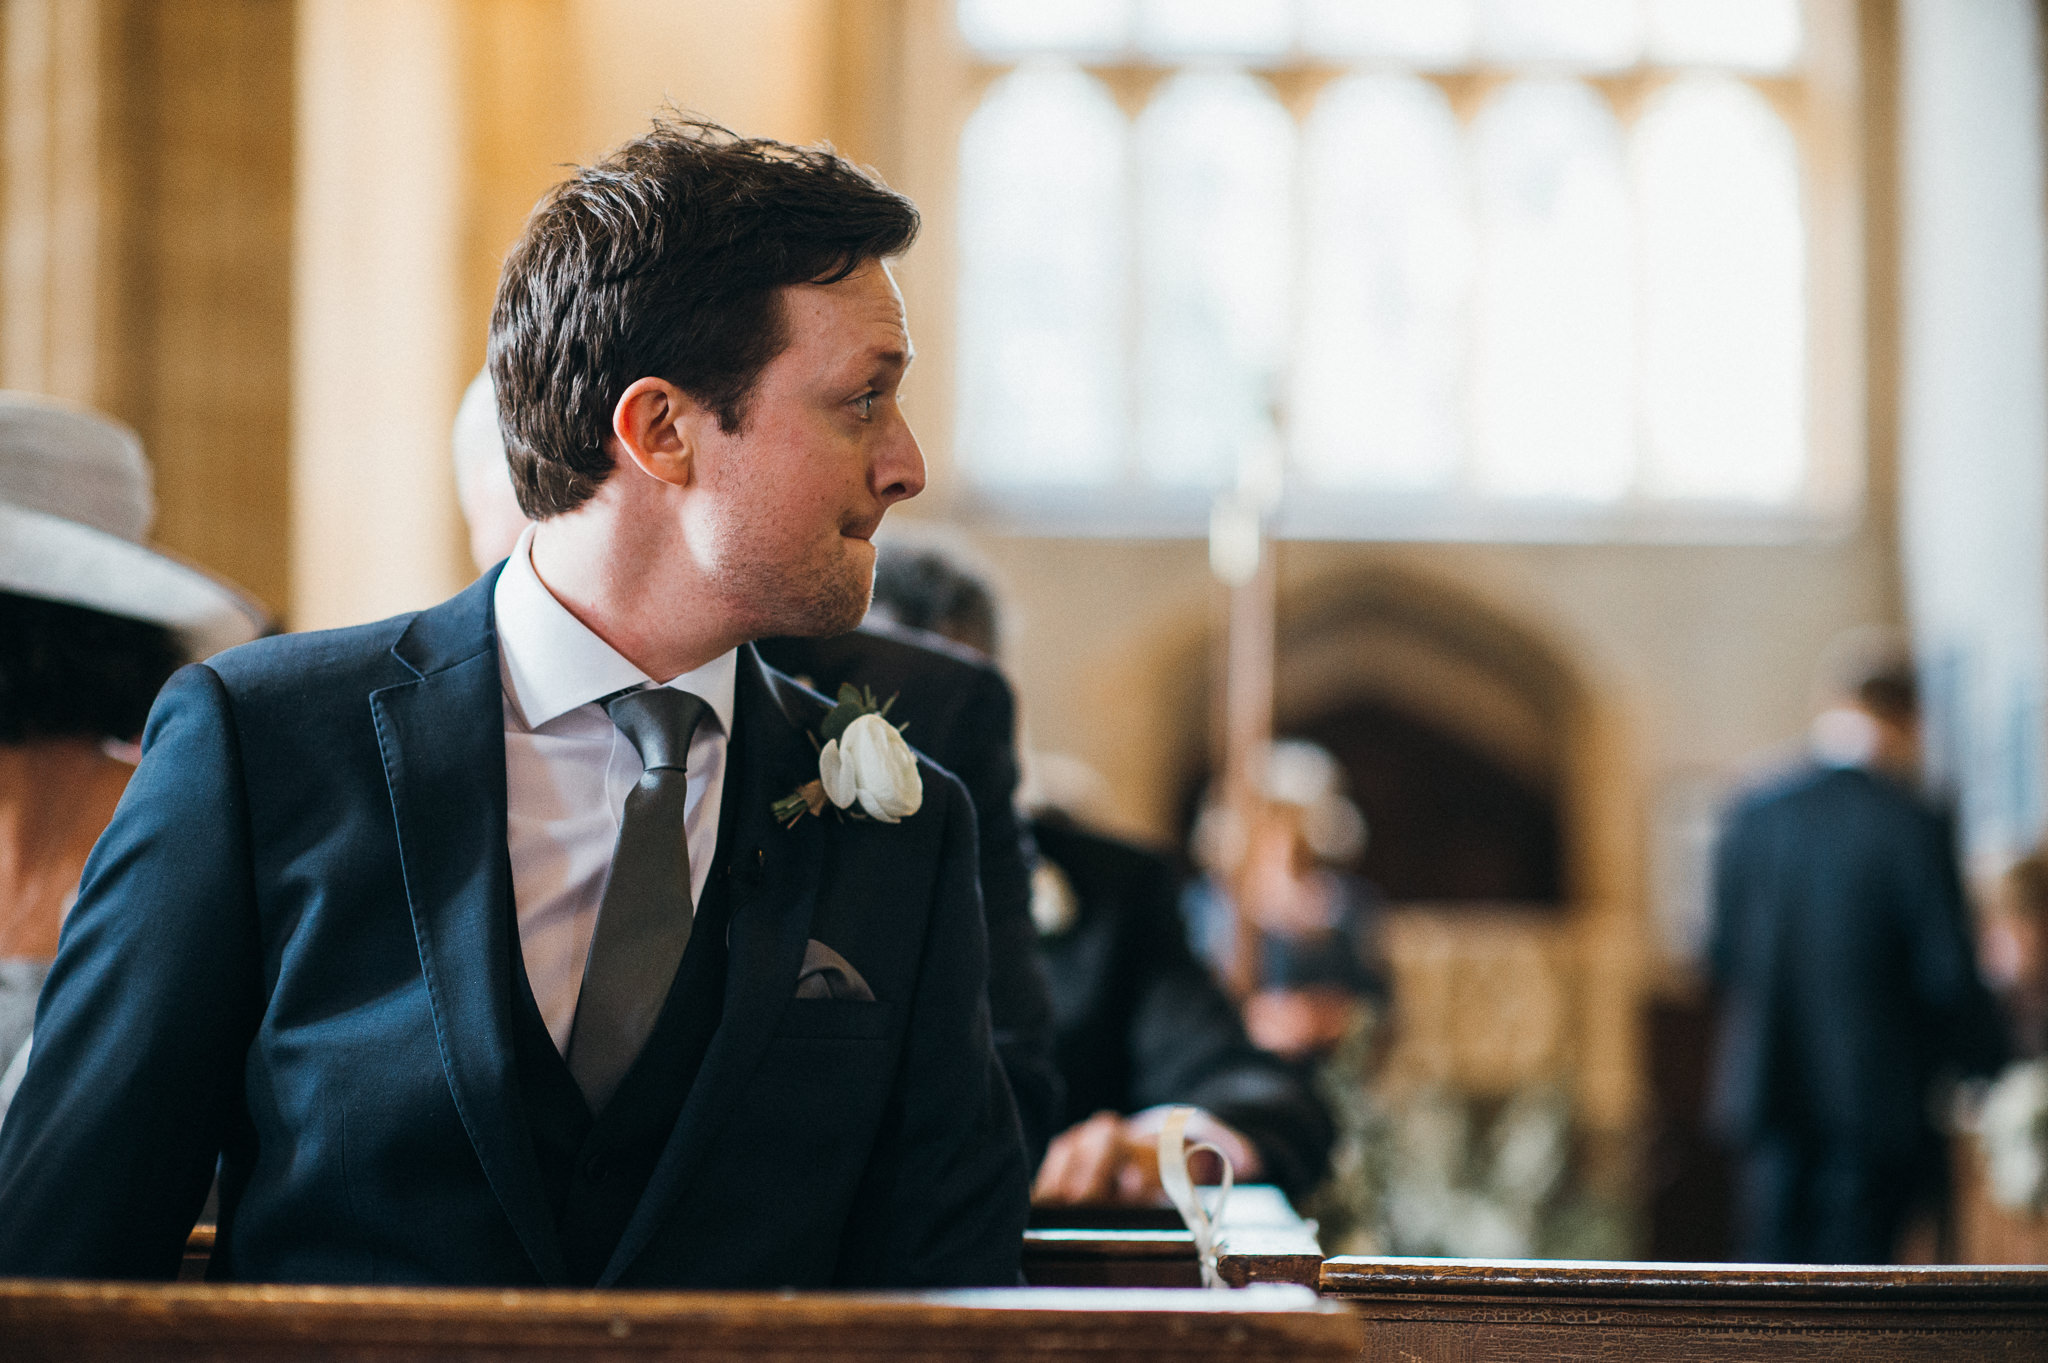 Groom looks back at Church of St Peter and St Paul, Muchelney